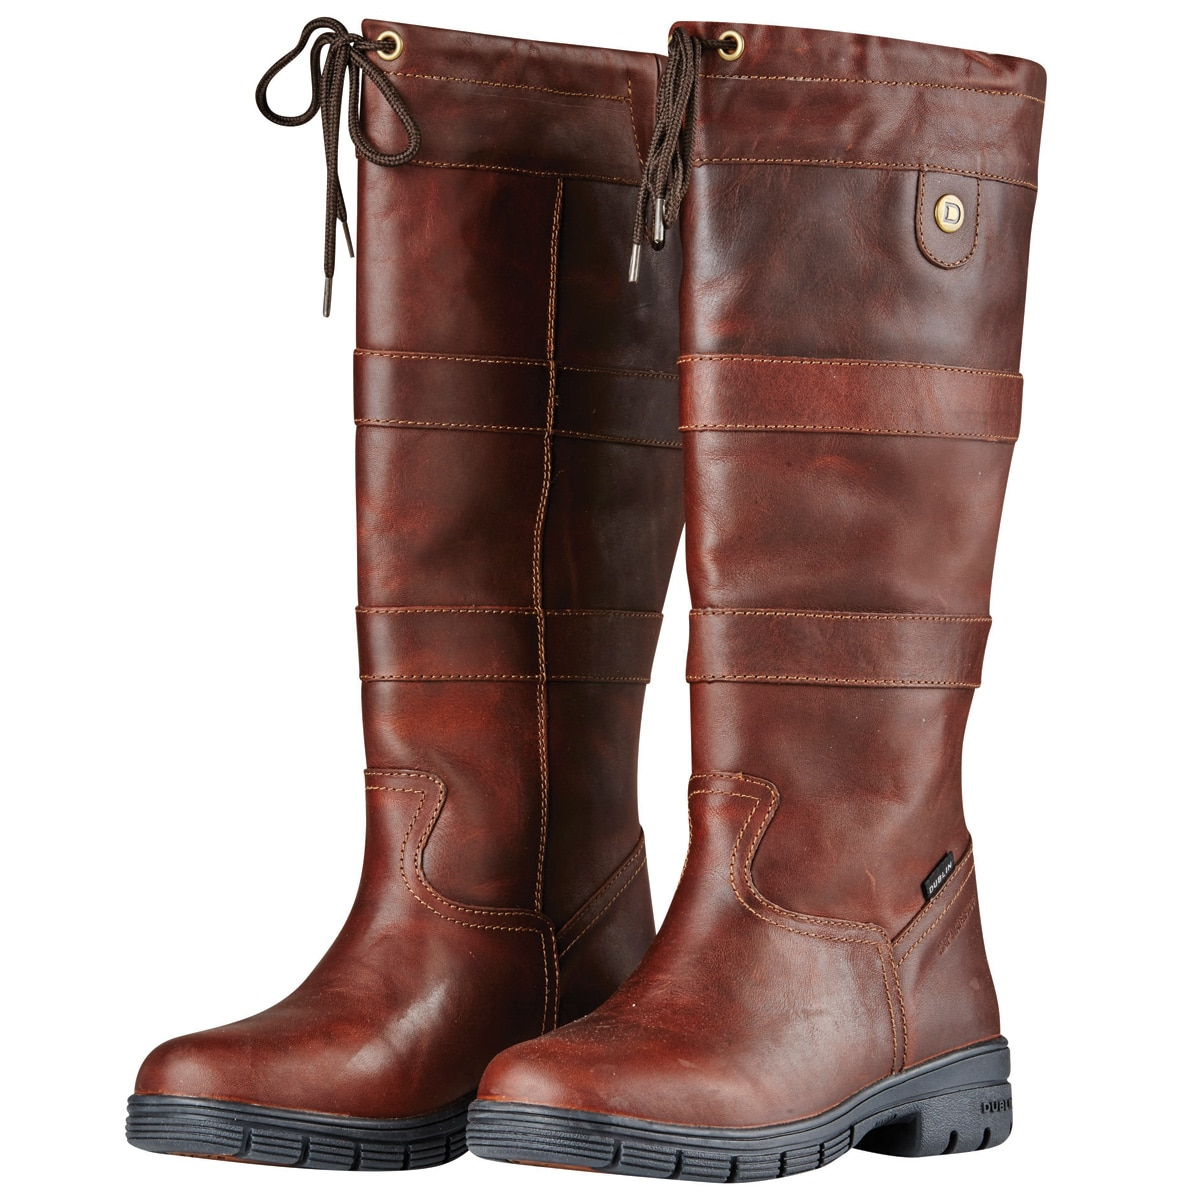 Dublin Unisex River Leather Boots II